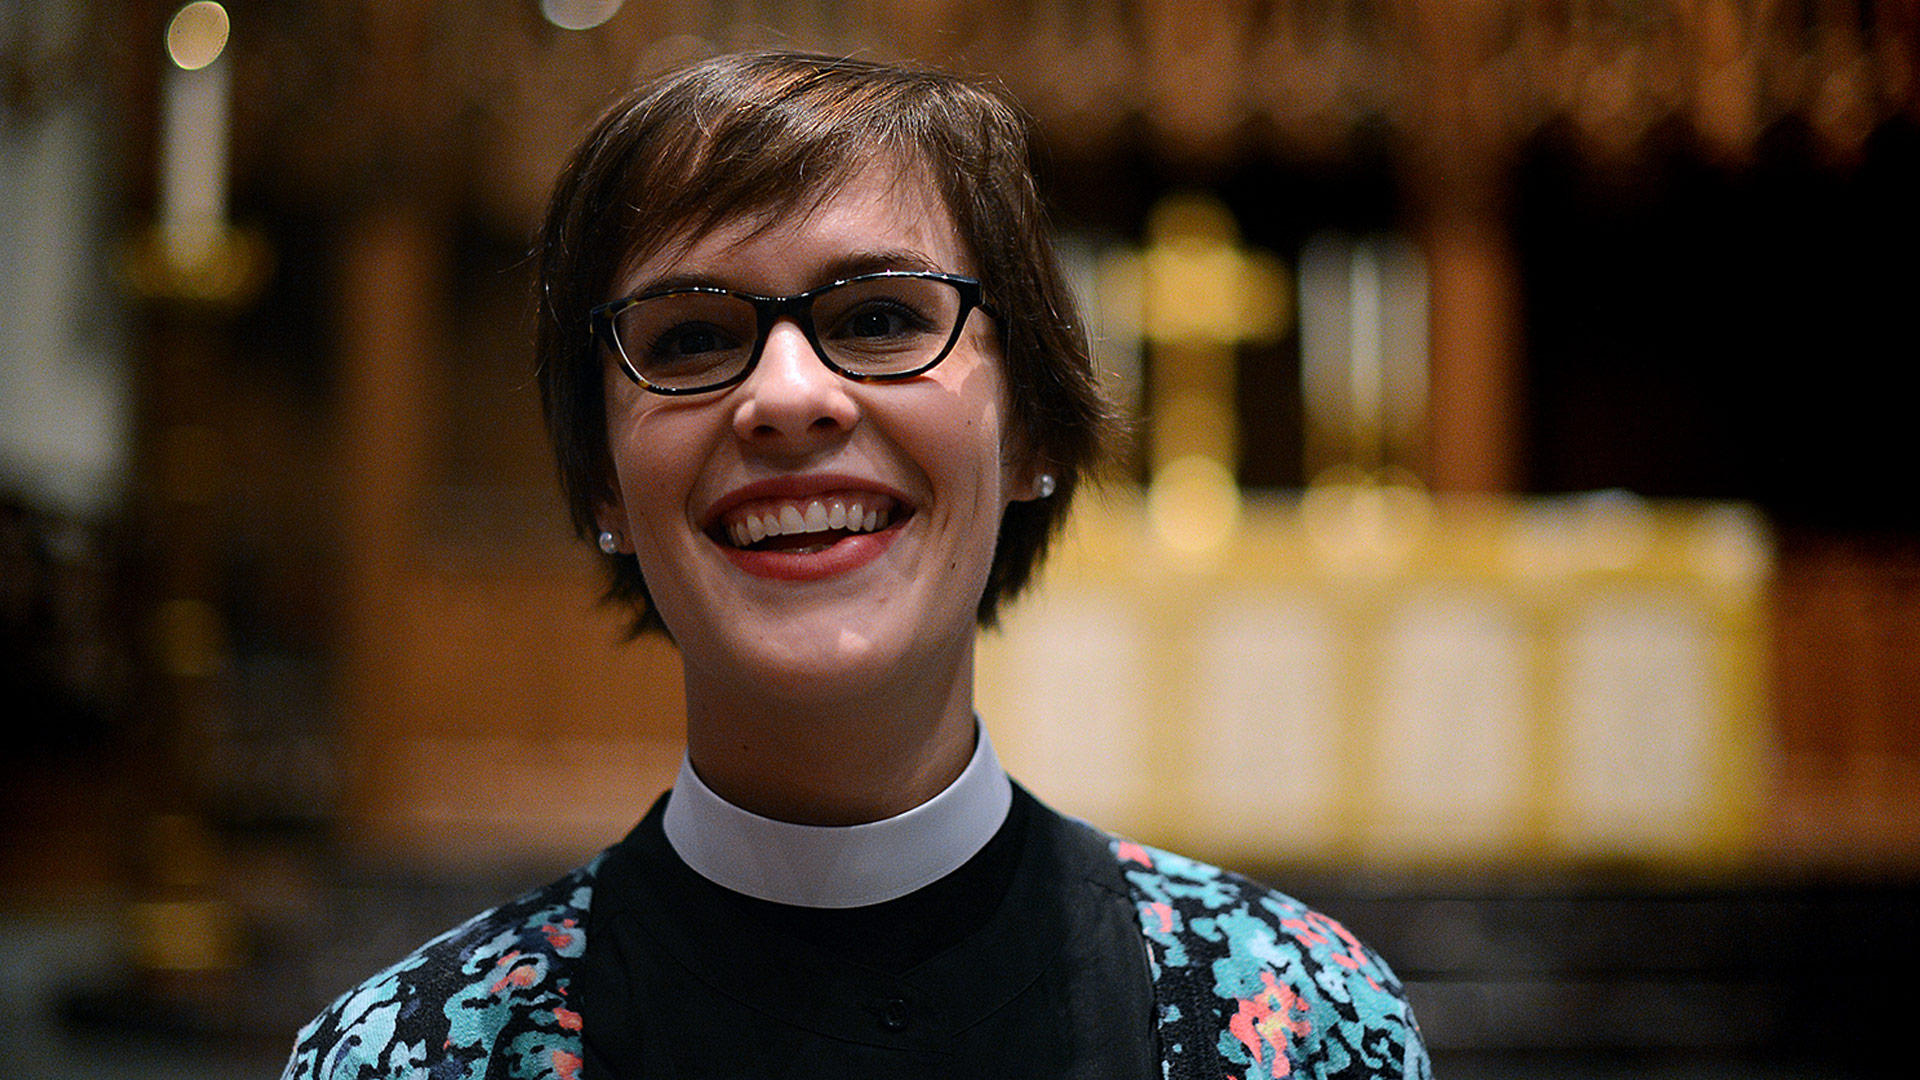 The-Introverted-Priest-Rev-Sarah-T-Condon